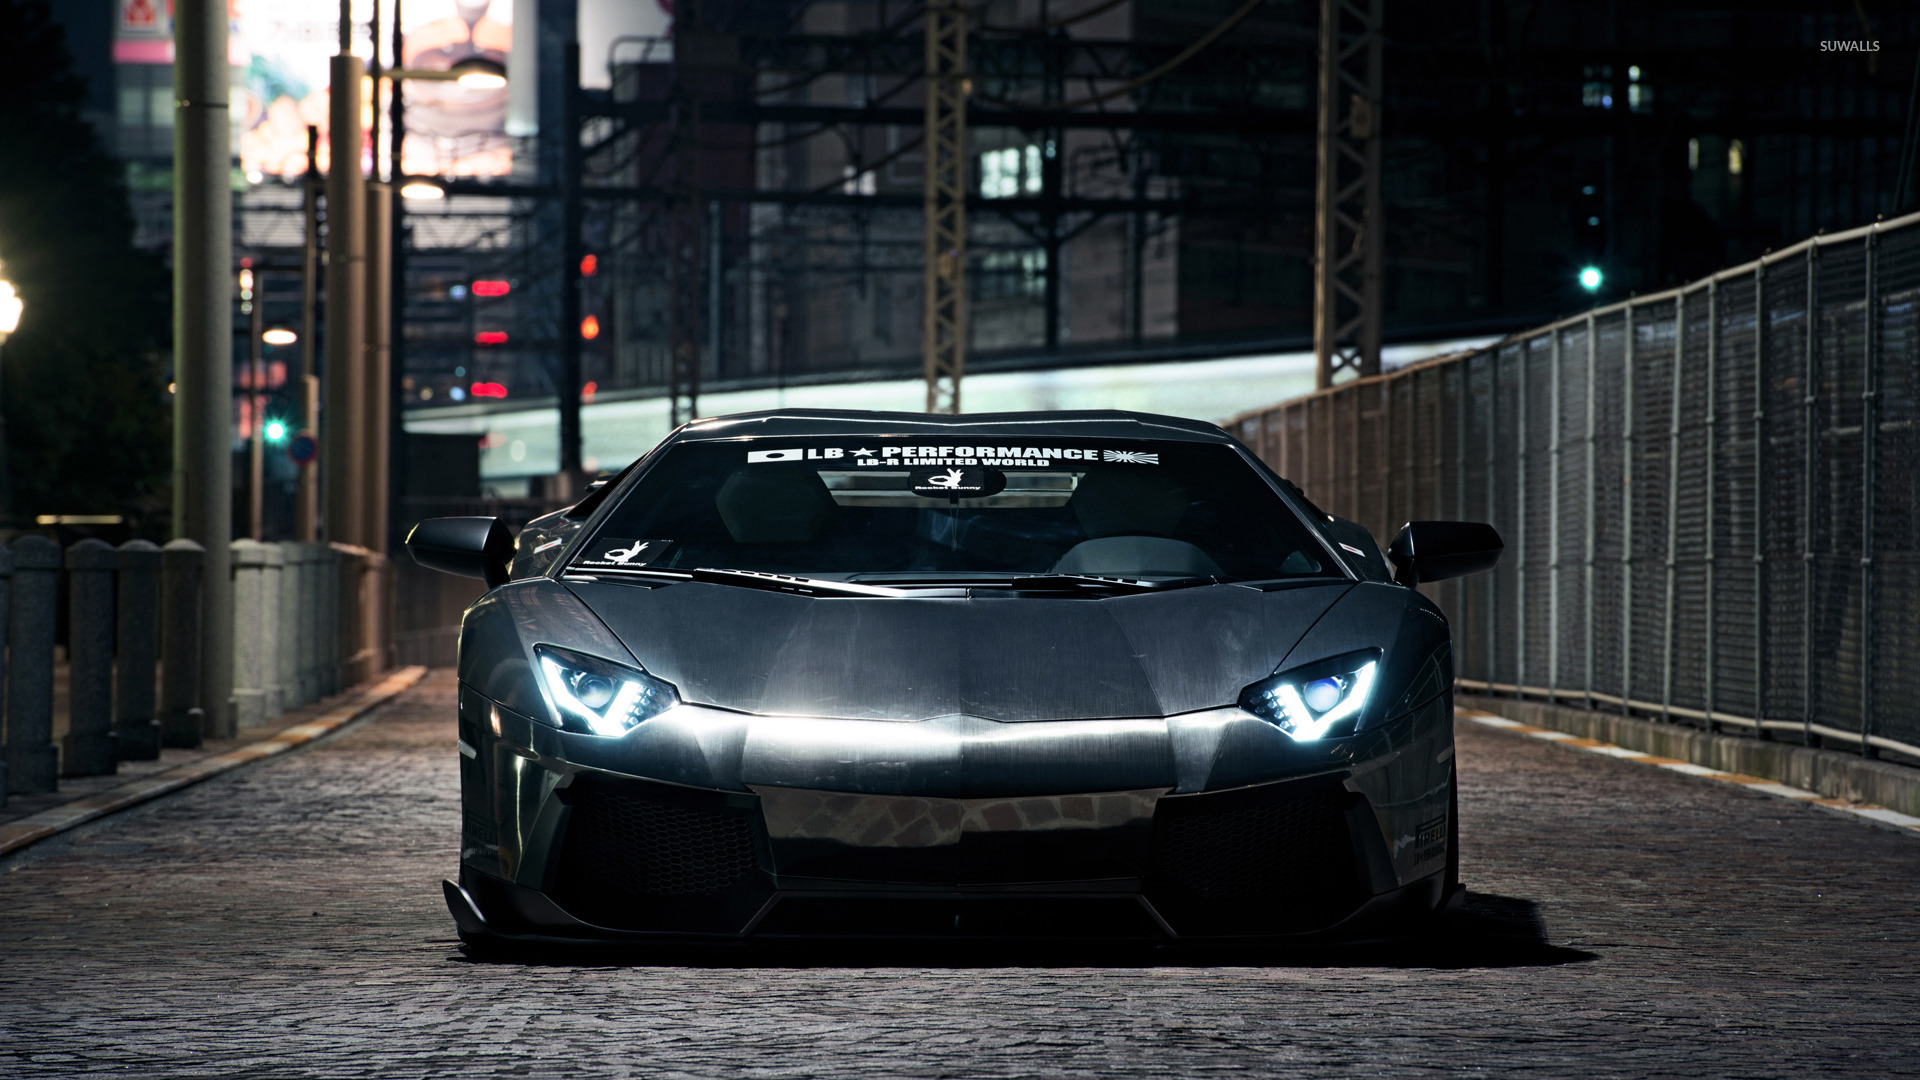 Lamborghini Aventador 21 Wallpaper Car Wallpapers 46562